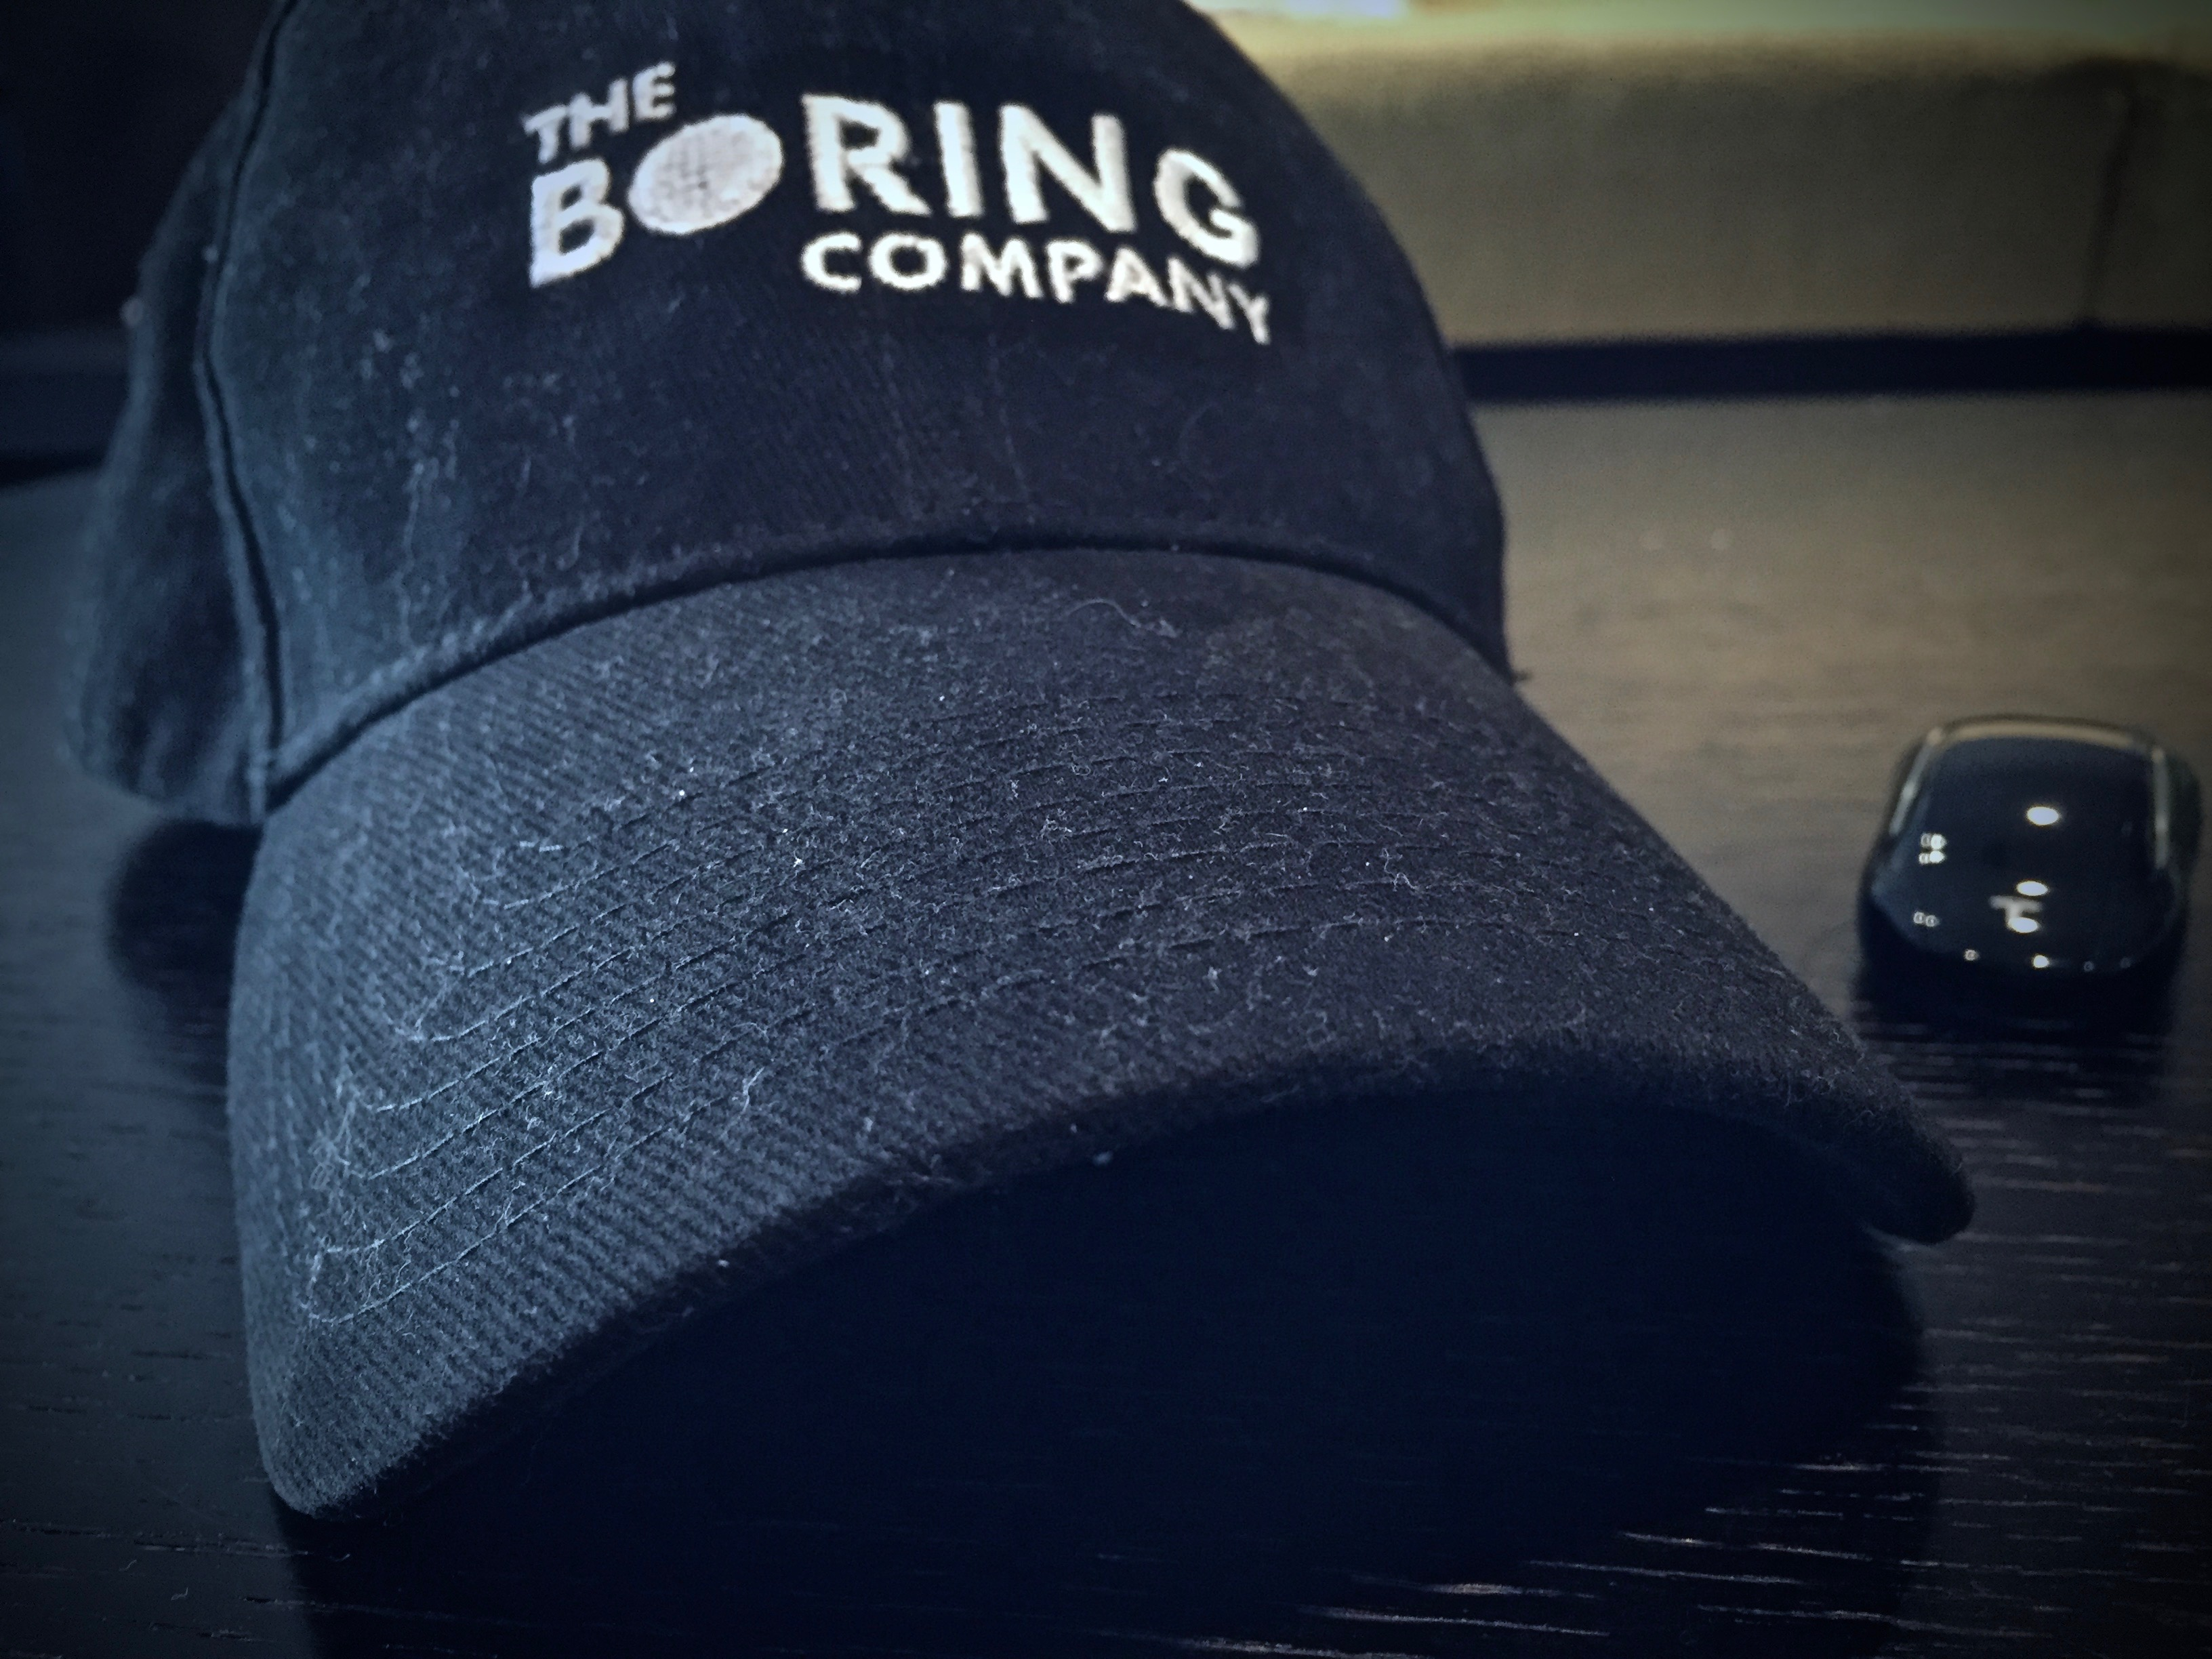 the-boring-company-hat-tesla-keyfob